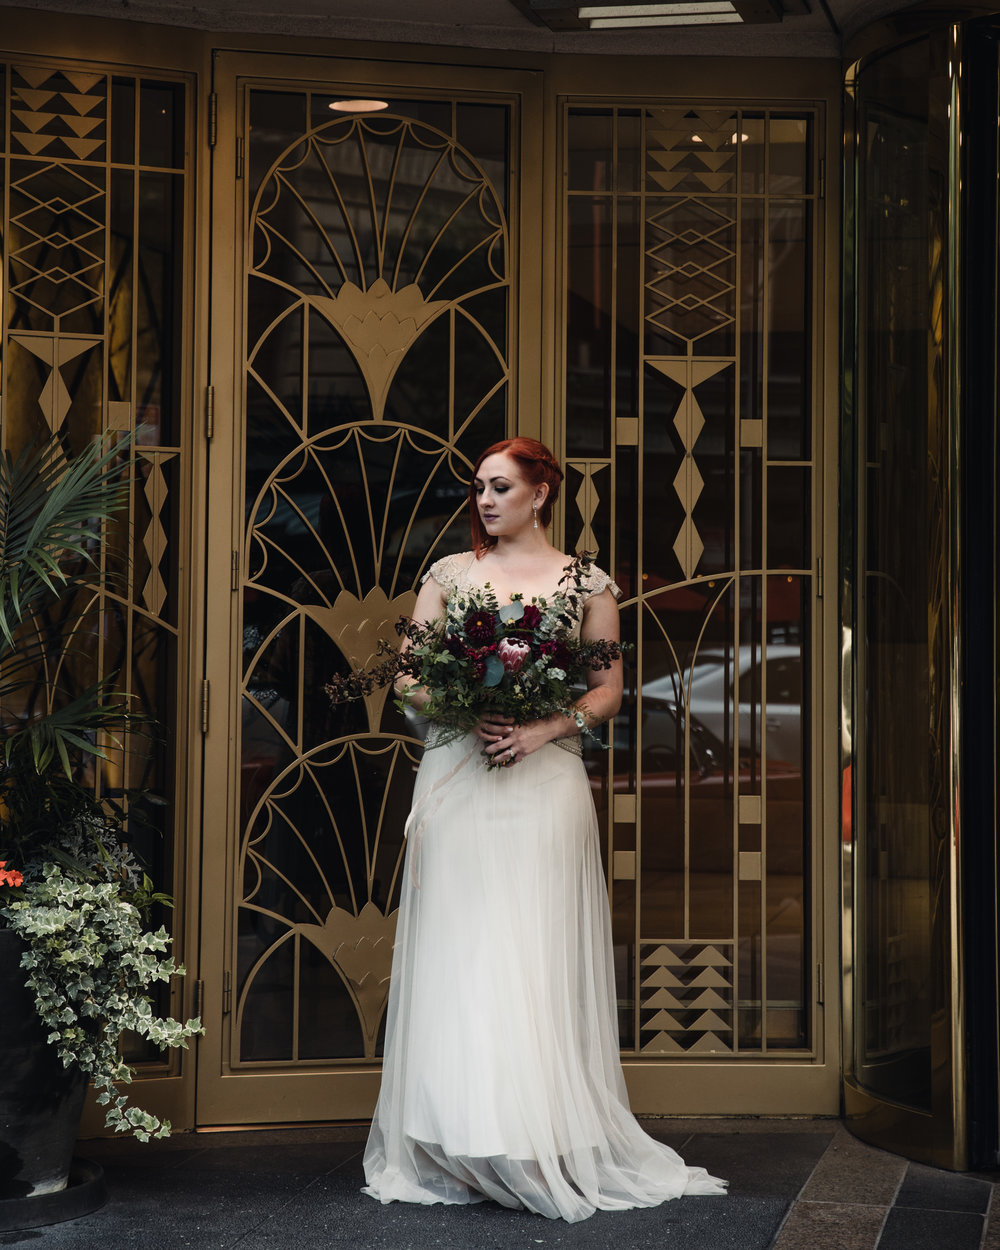 Gown By Gwendolynne - Florals by Cora Flora - Photography by Hove Photography